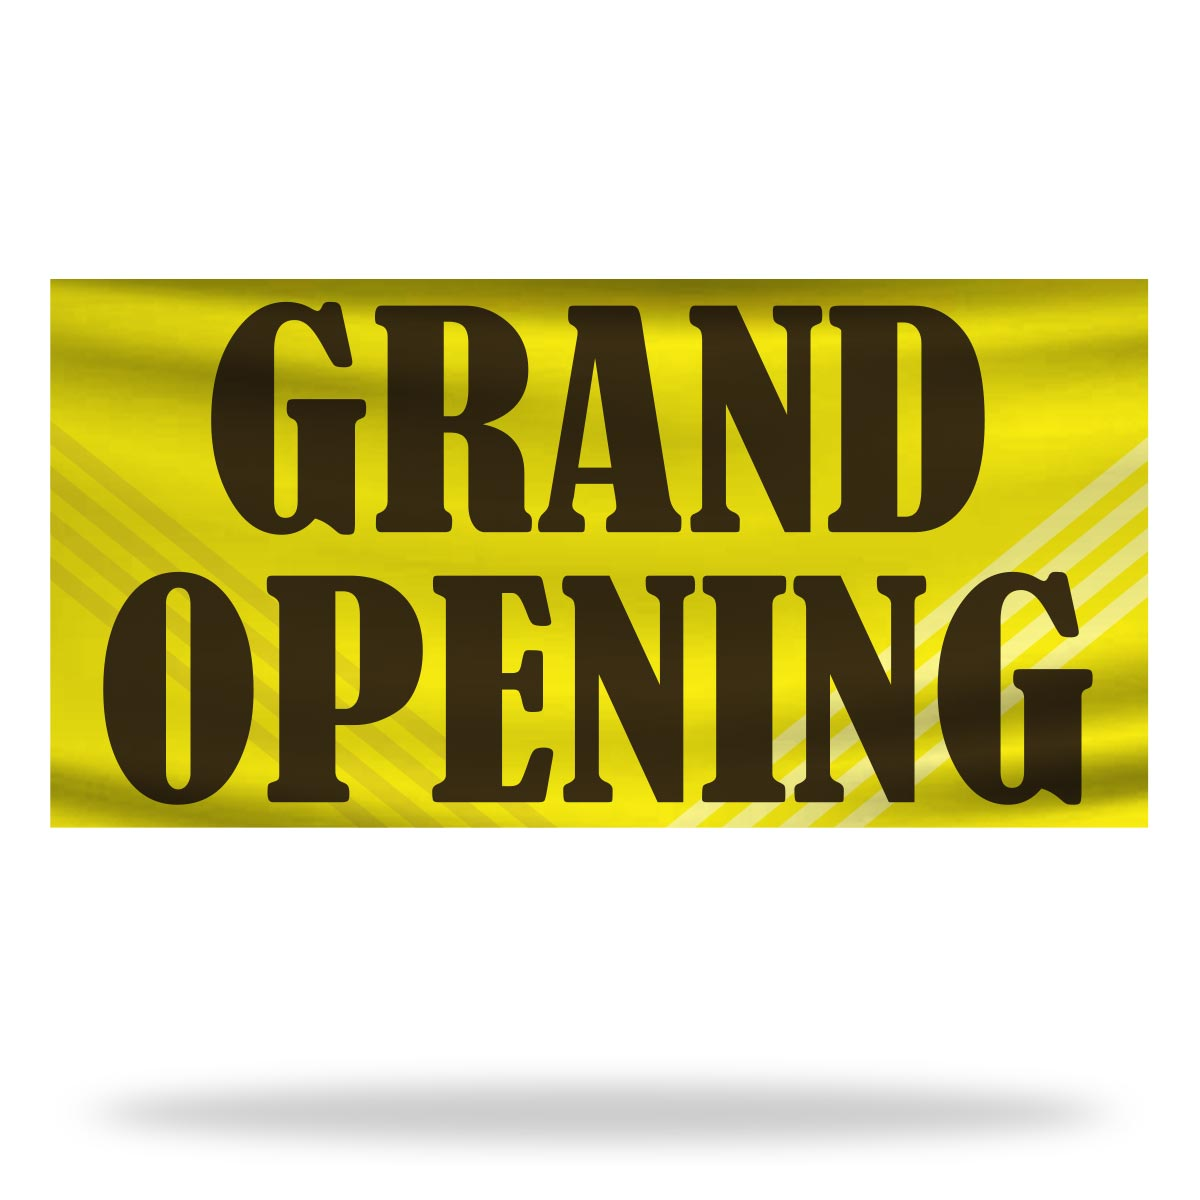 Grand Opening Flags & Banners Design 01